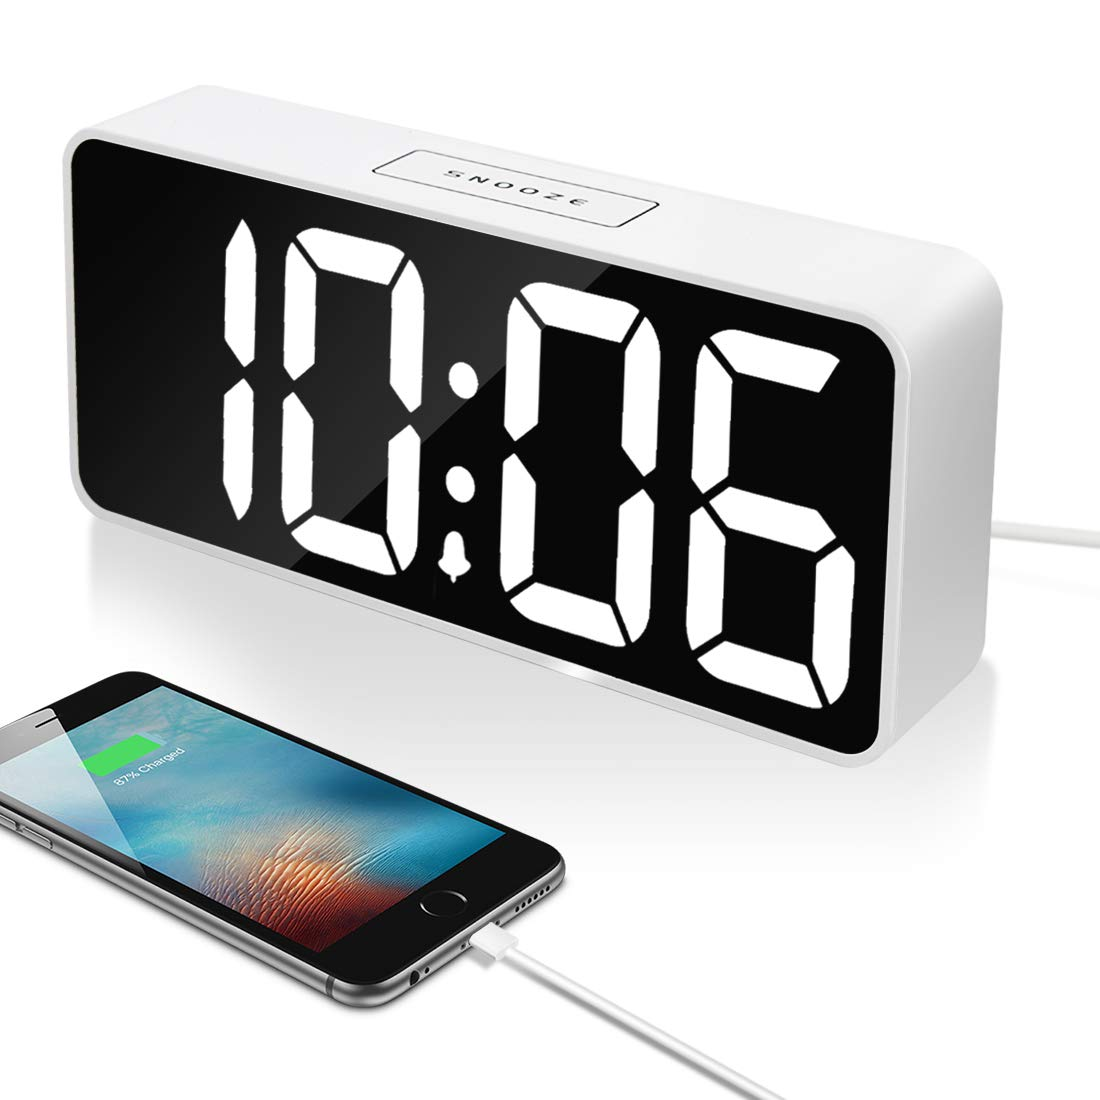 """9"""" Large LED Digital Alarm Clock with USB Port for Phone Charger, 0-100% Dimmer, Touch-Activated Snooze, Outlet Powered (White)"""